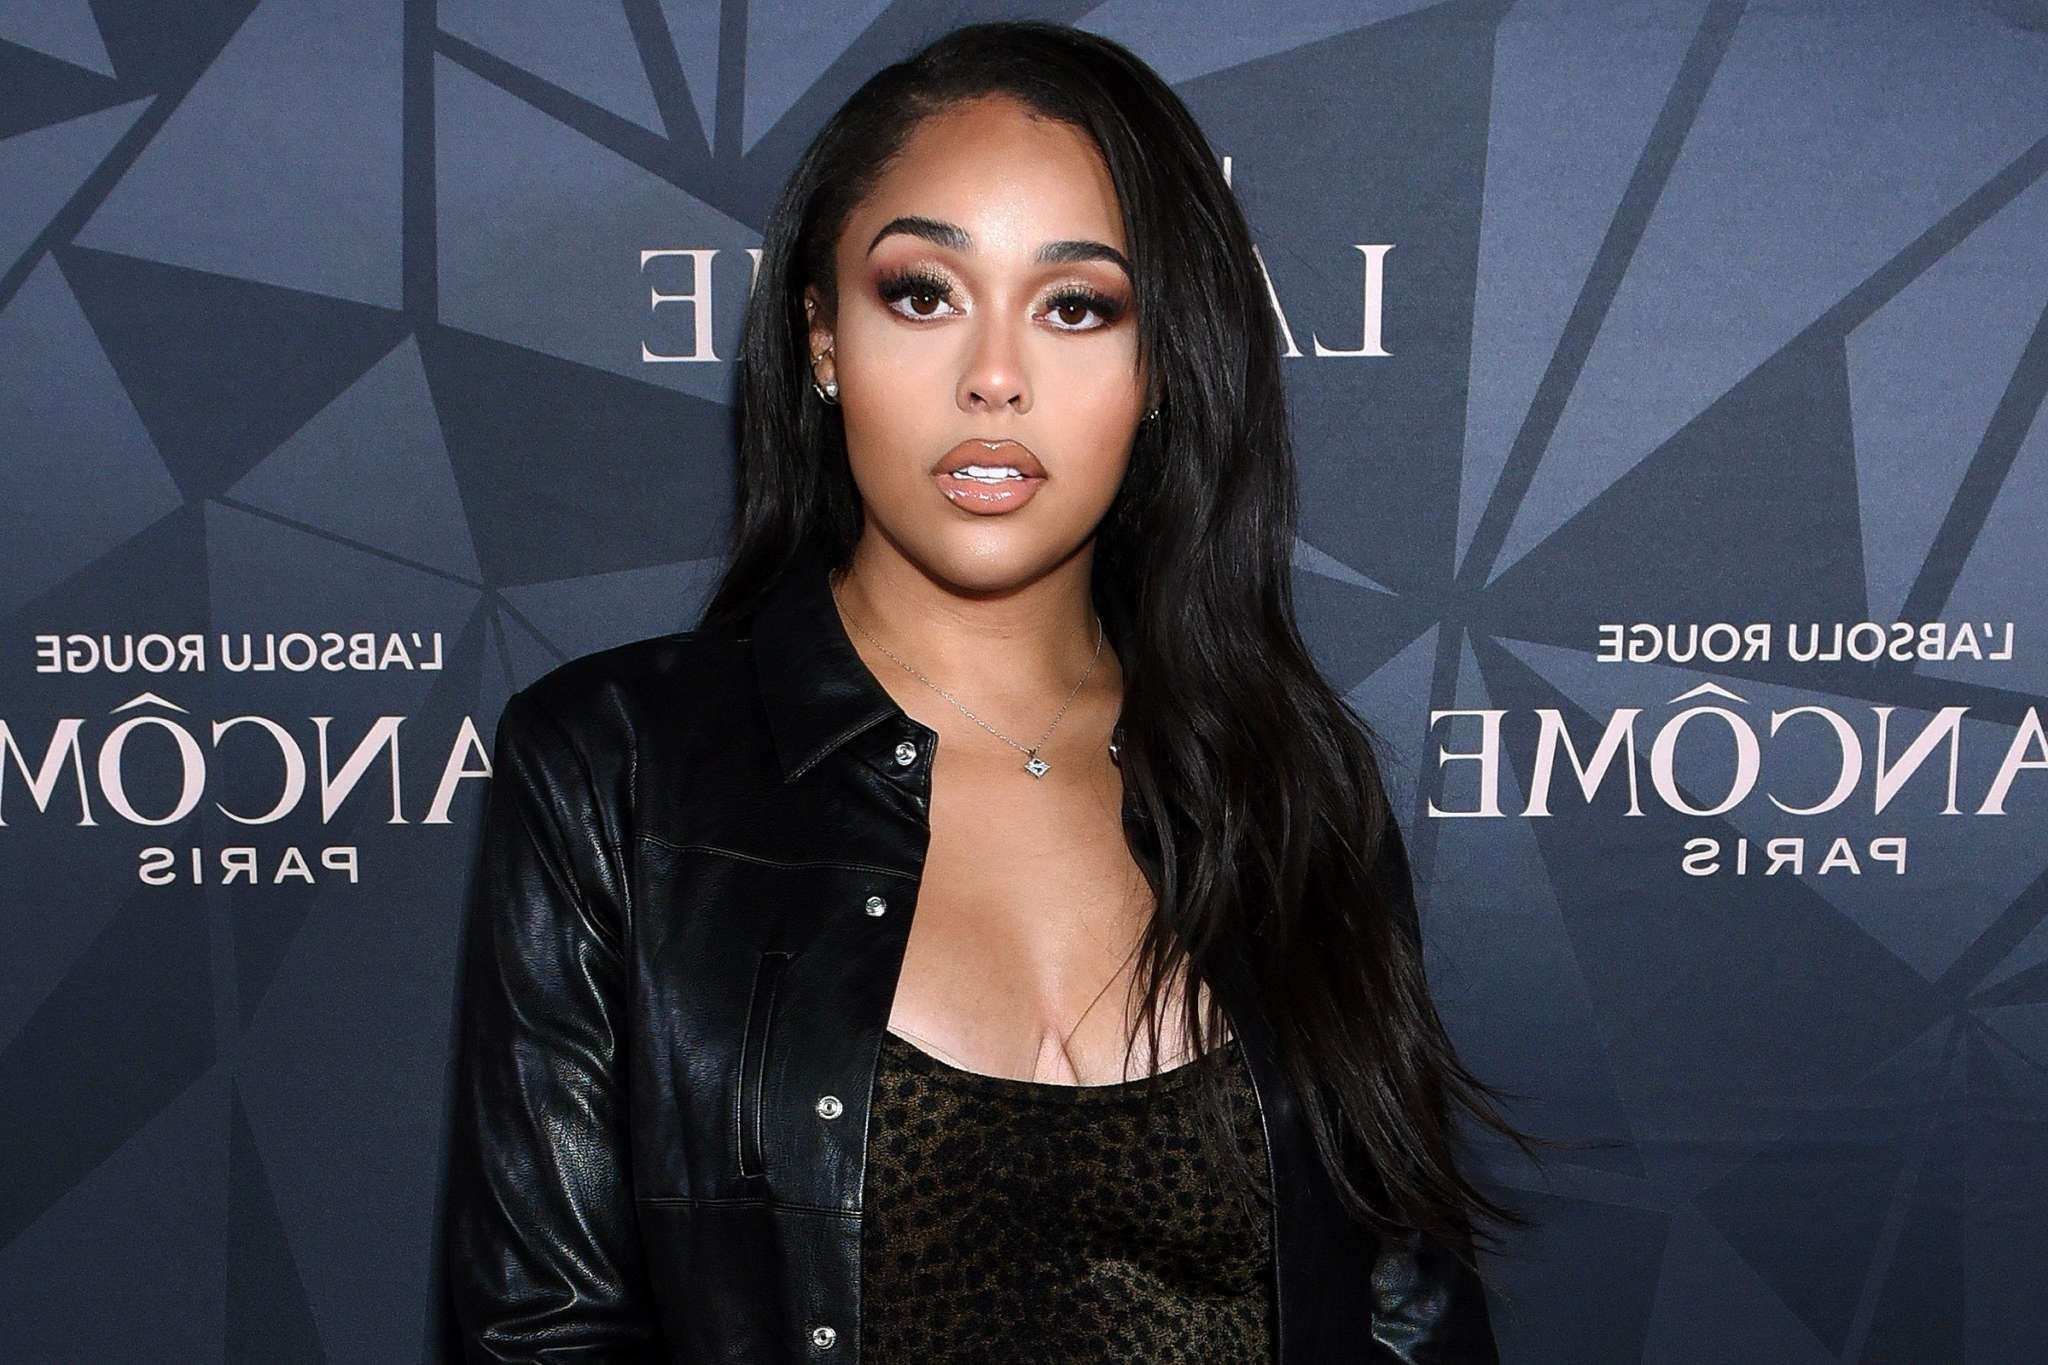 Jordyn Woods Reacts to Backlash for Wearing an Abaya in Middle East